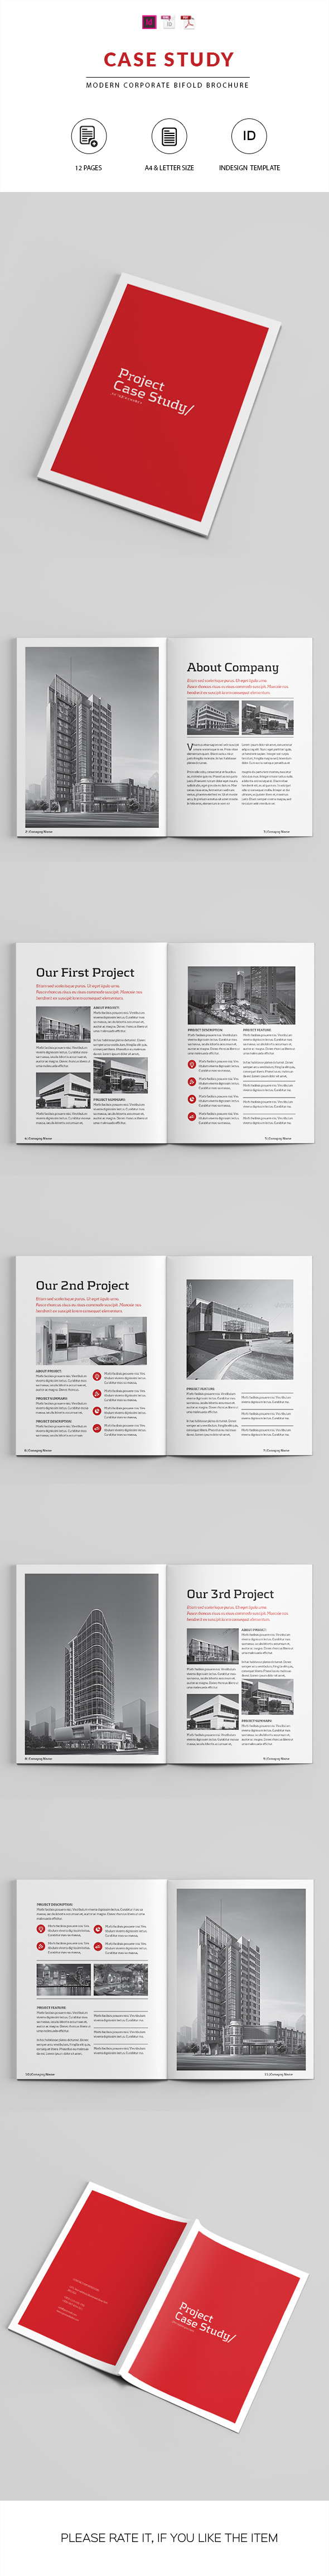 Case Study Booklet | Indesign Template on Behance